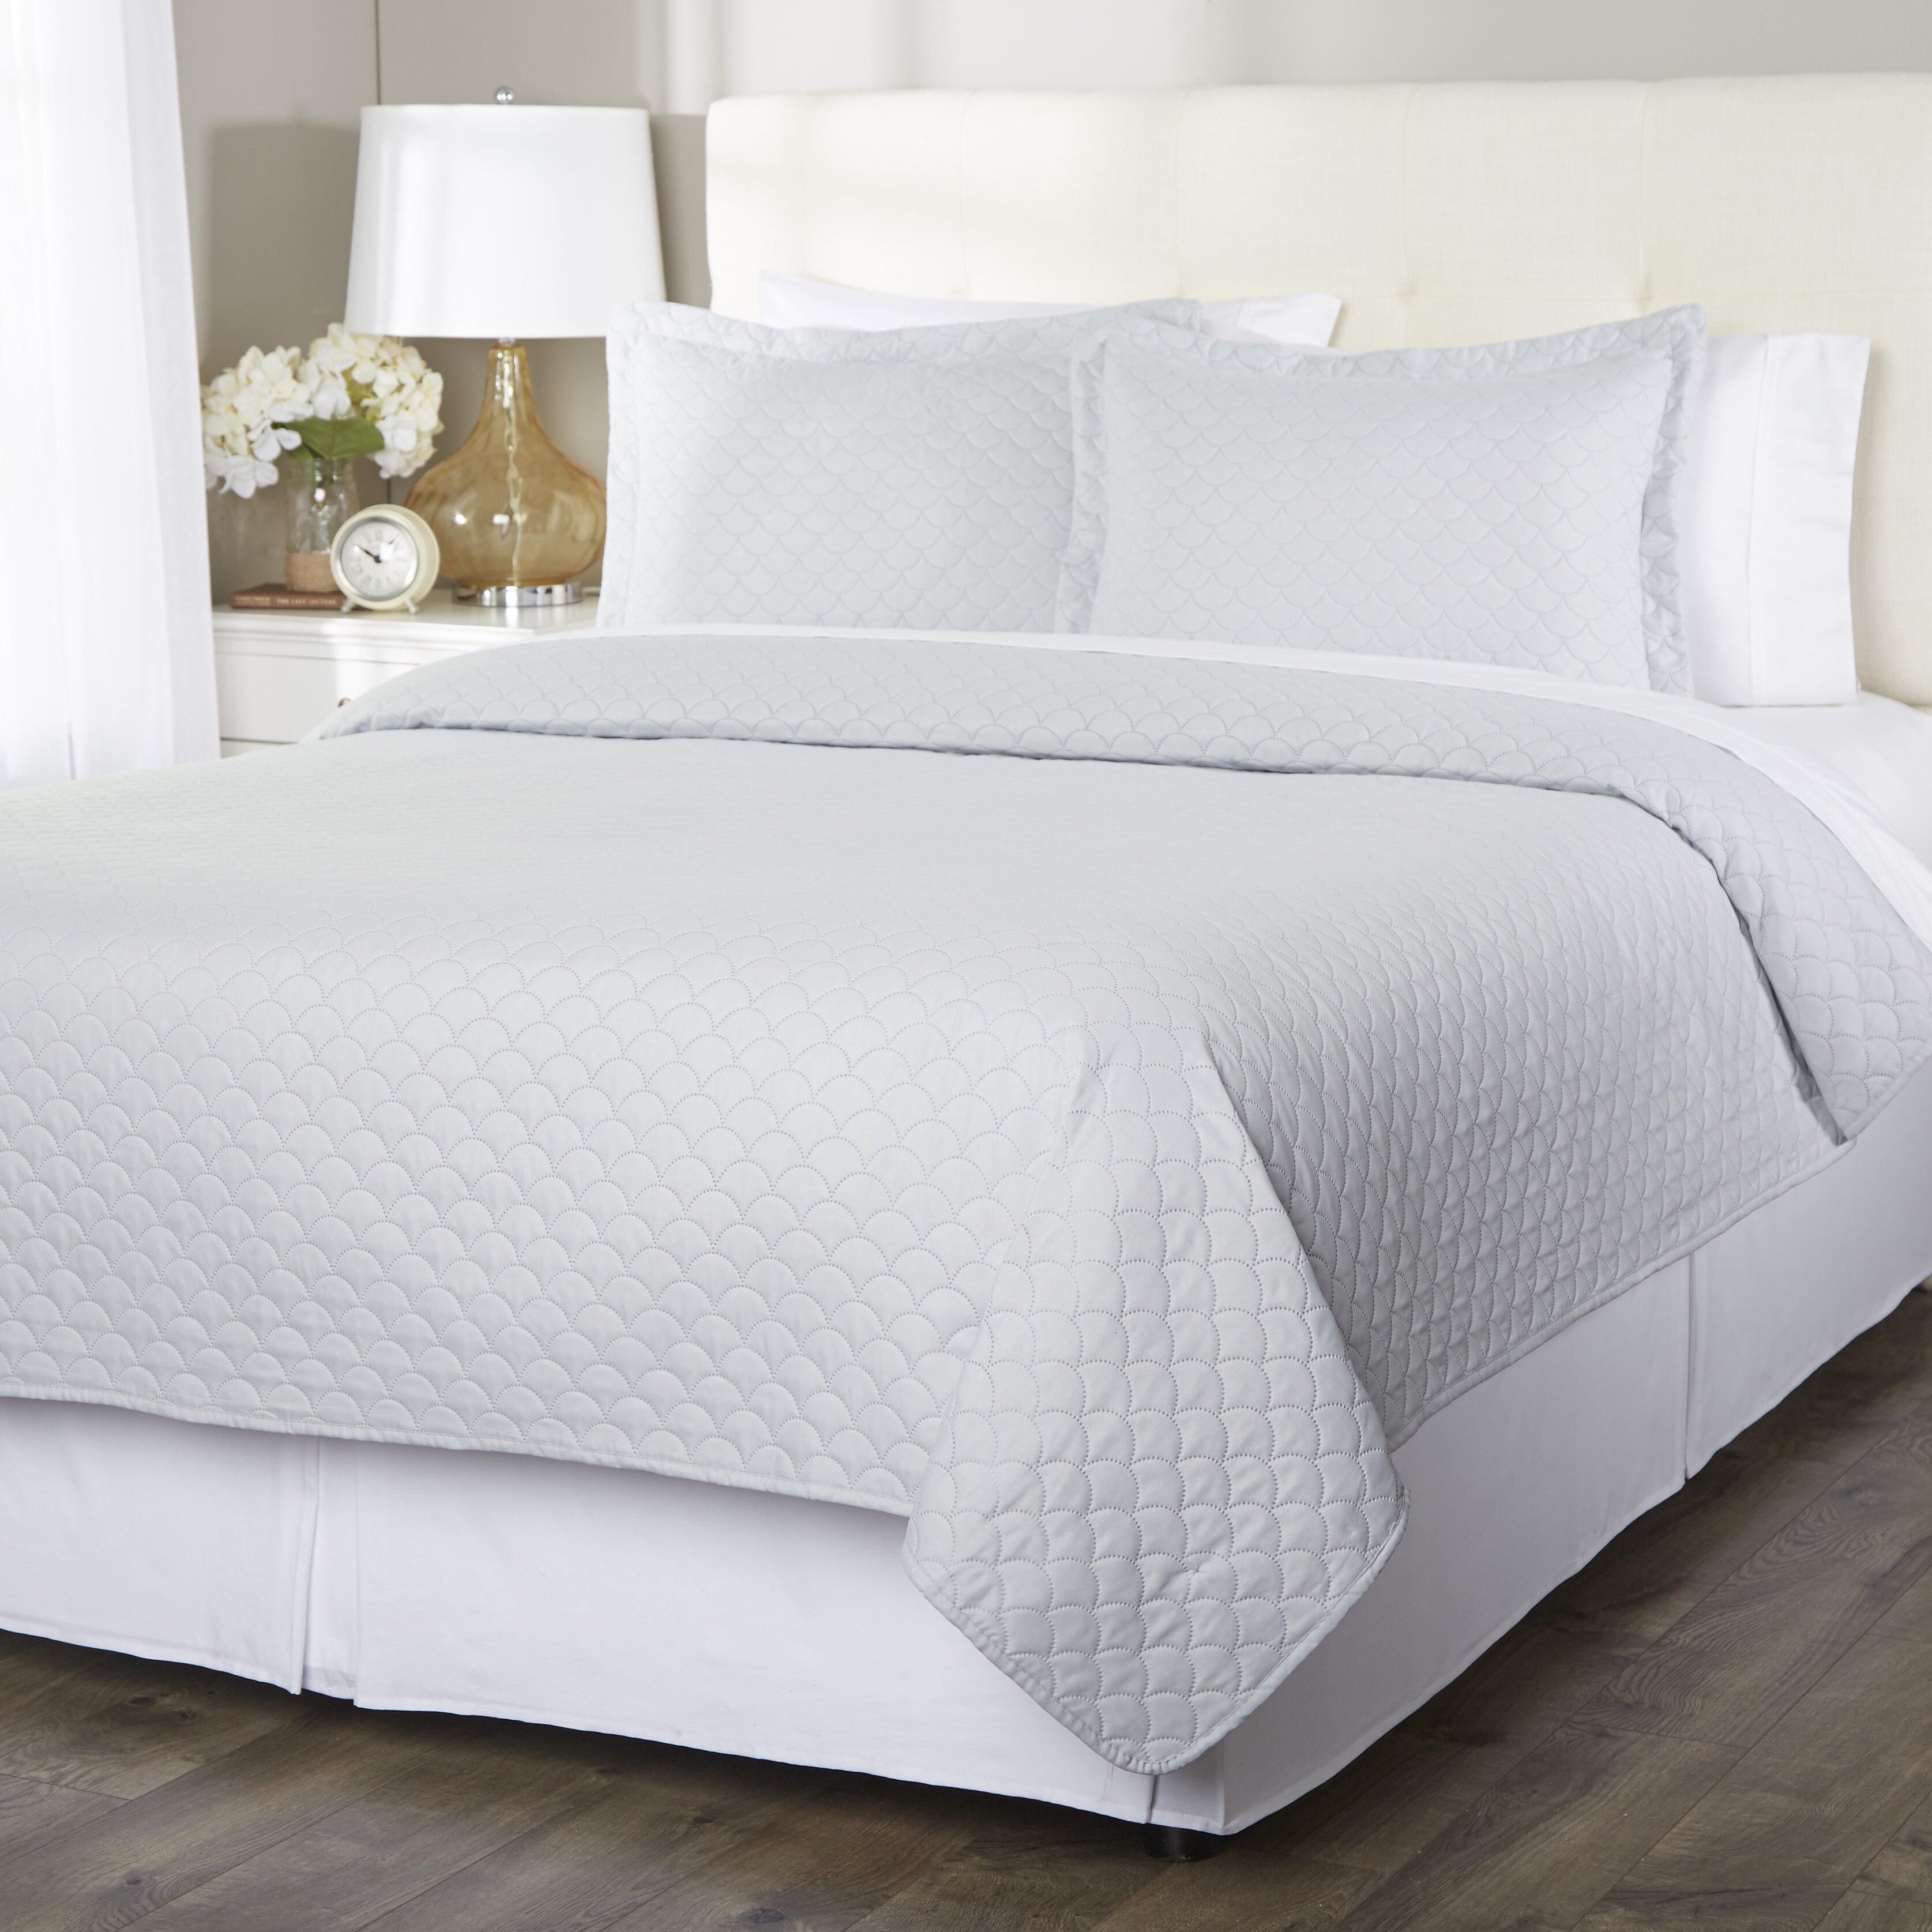 Wayfair Basics Wayfair Basics Quilt Set Amp Reviews Wayfair